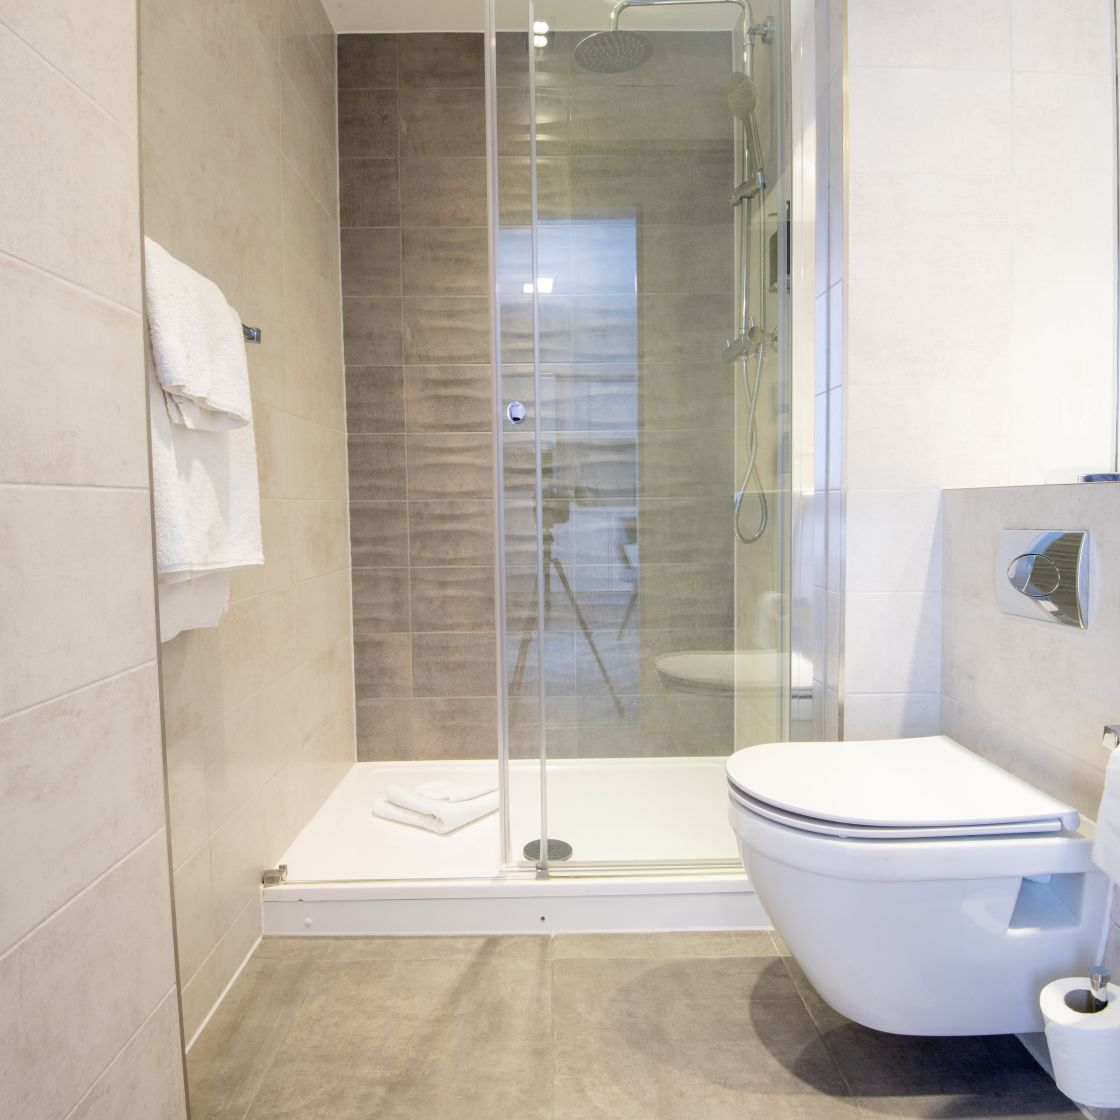 En-suite Bathroom with walk-in rainfall shower. Student Apartment in London